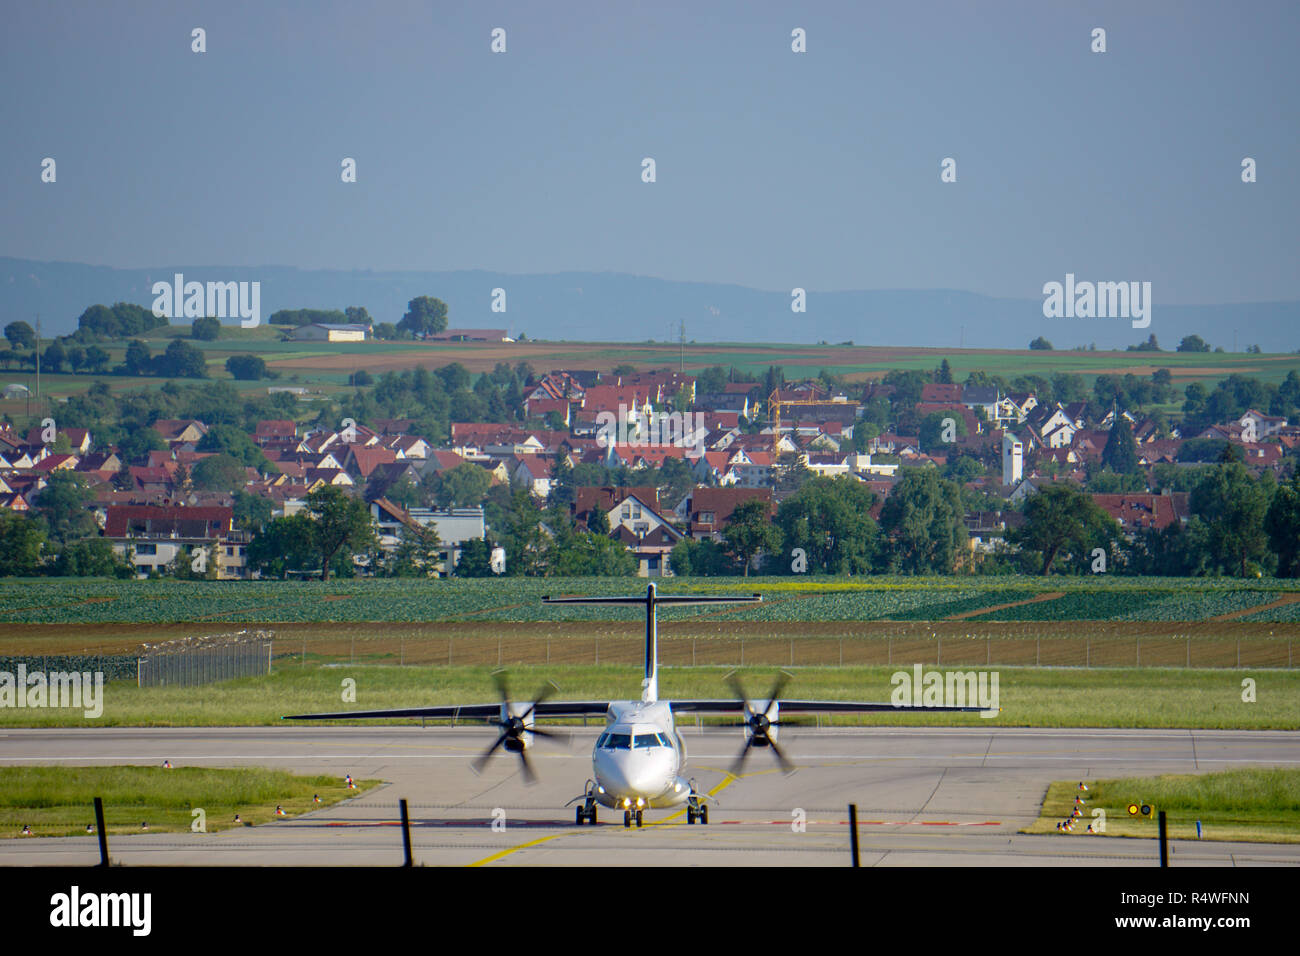 landed aircraft with propeller - Stock Image